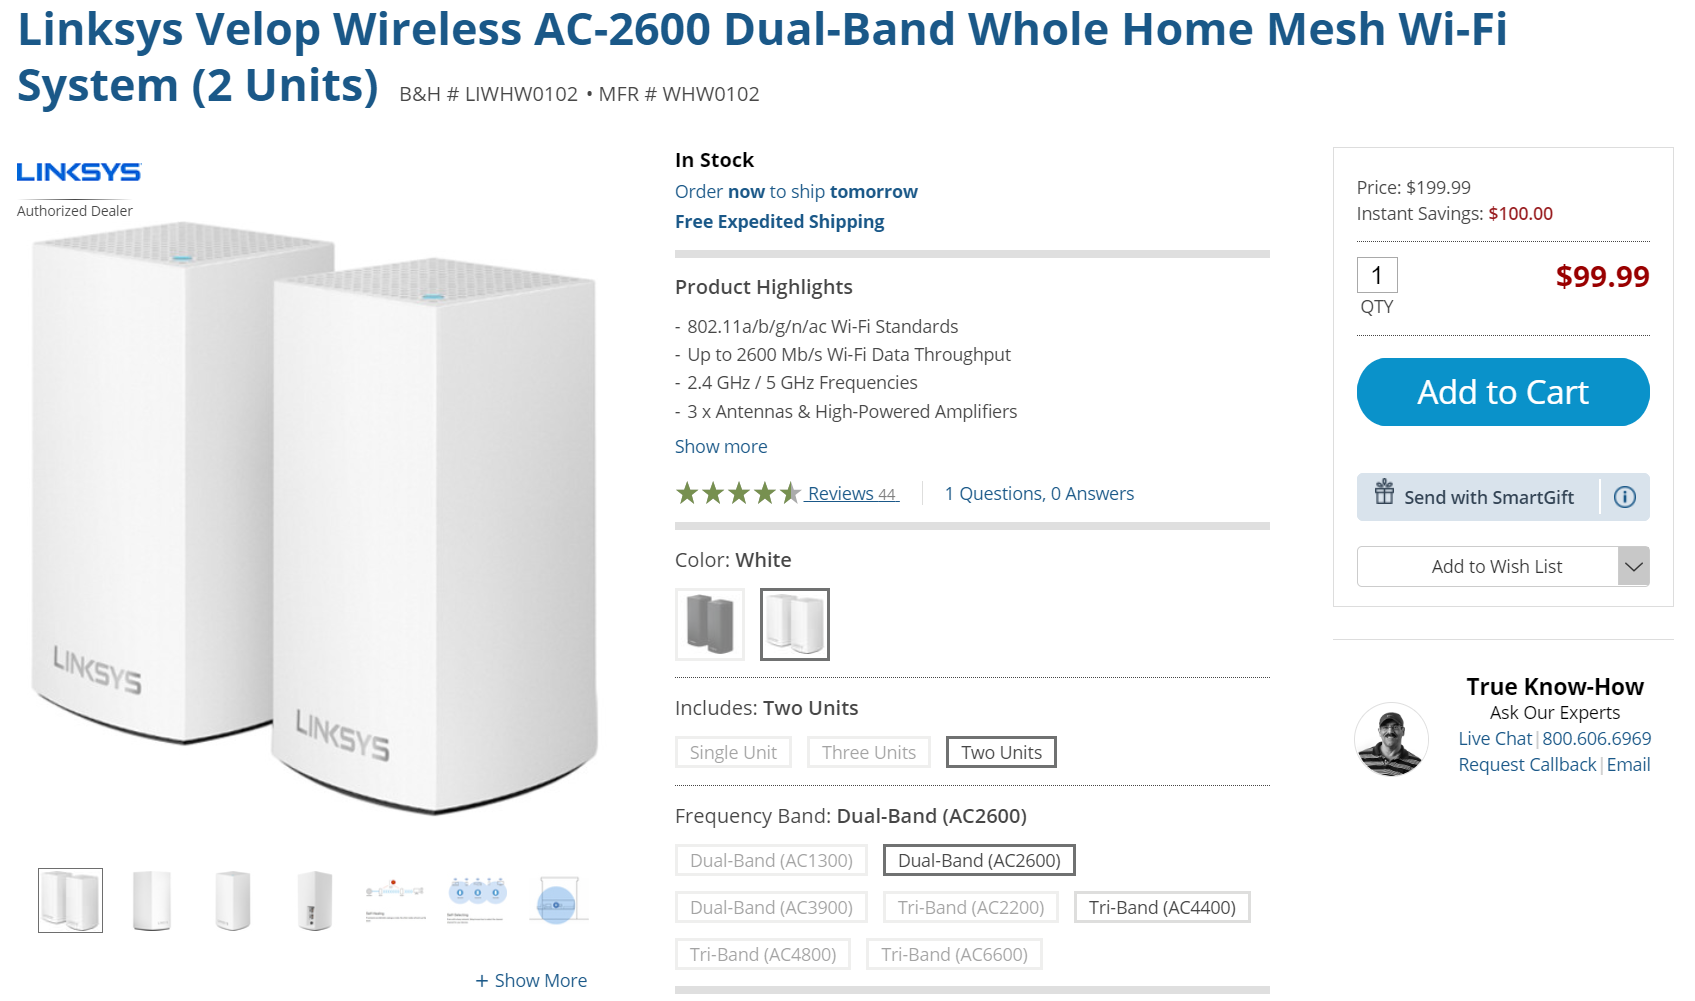 Linksys Velop 2-pack mesh Wi-Fi is $100 (50% off) on B&H